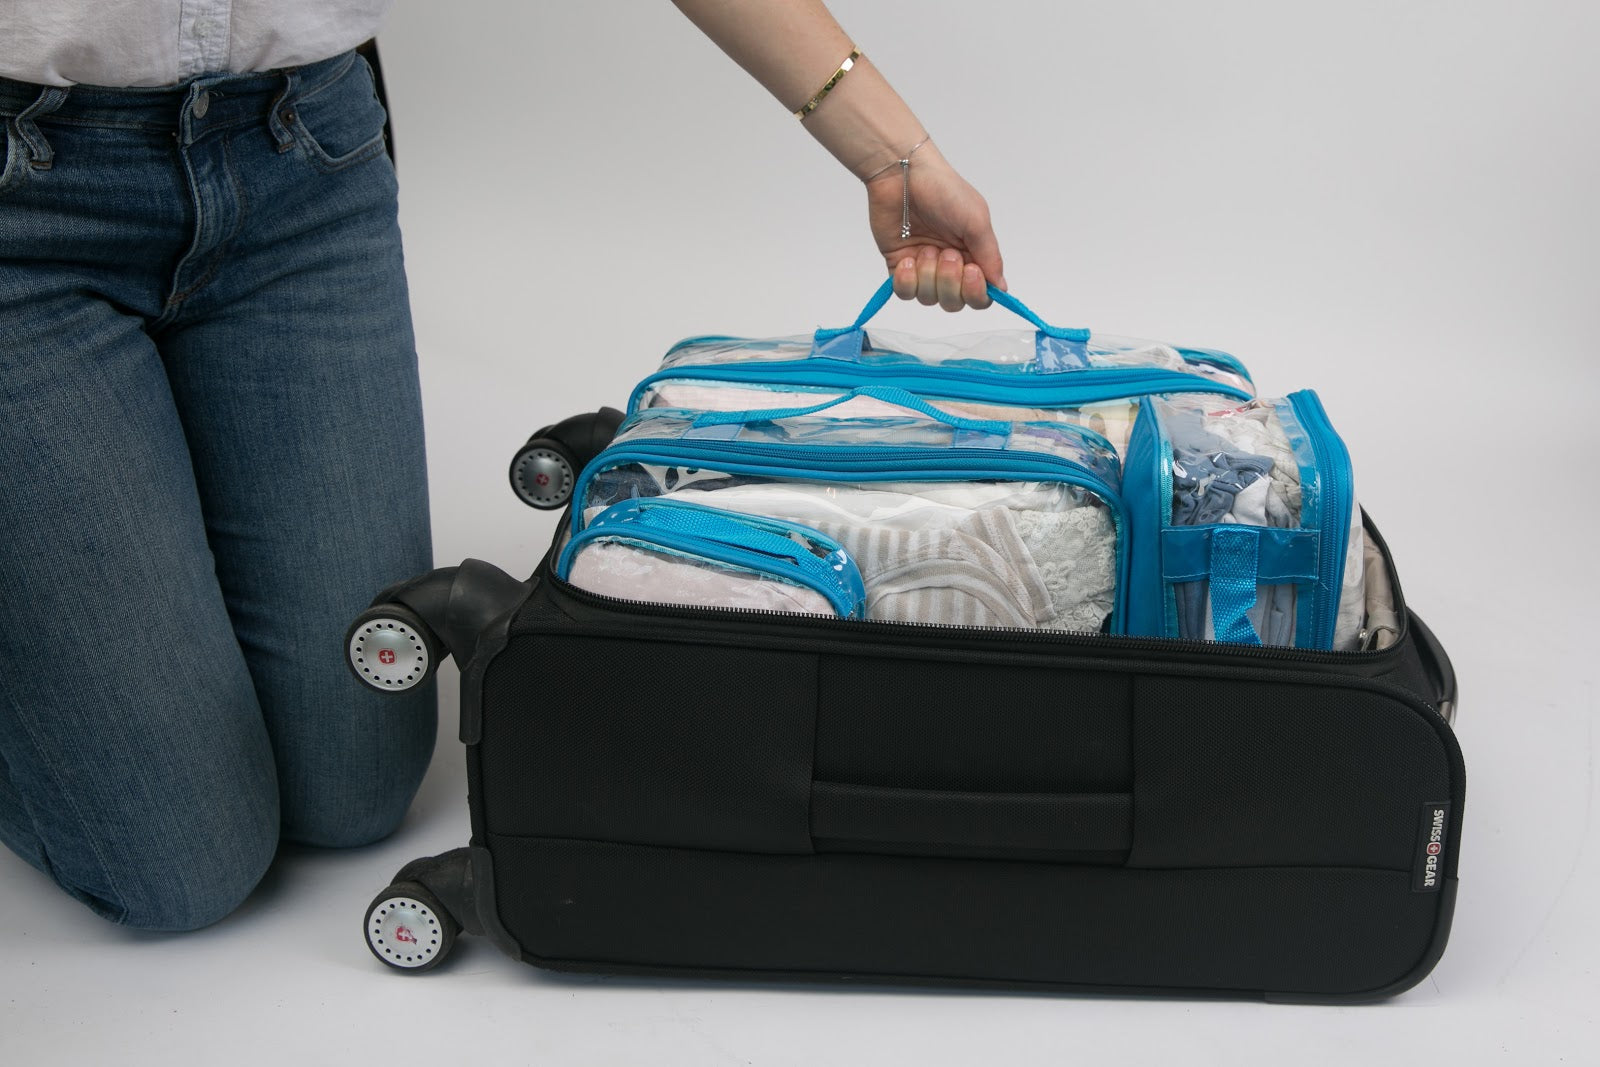 Turquoise packing cubes best system for carry on luggage